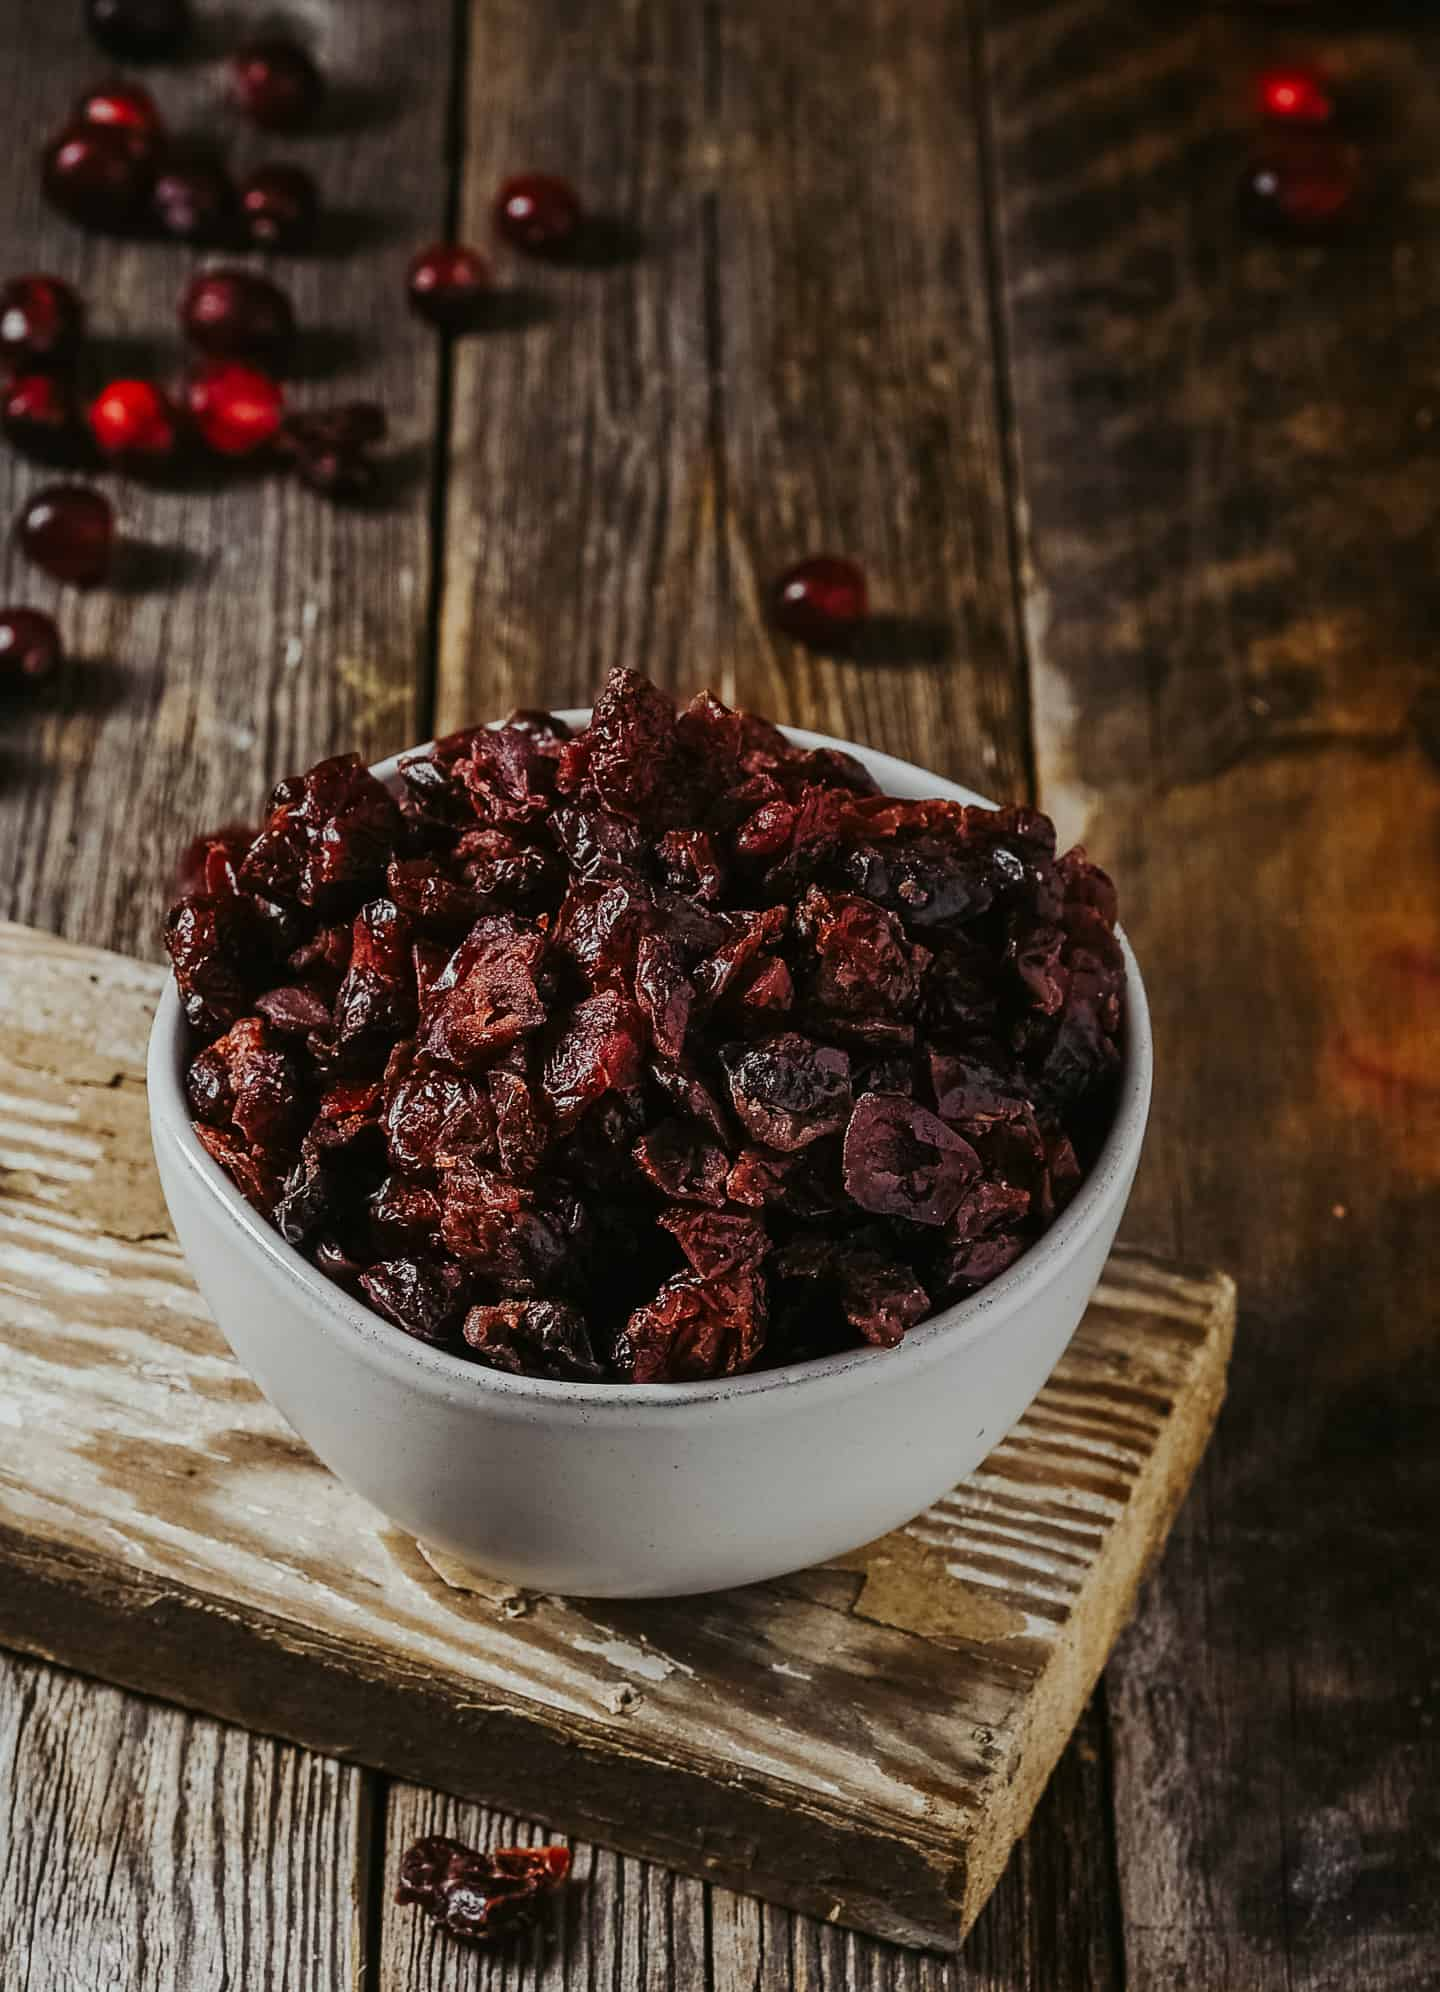 Bowl of dried cranberries.